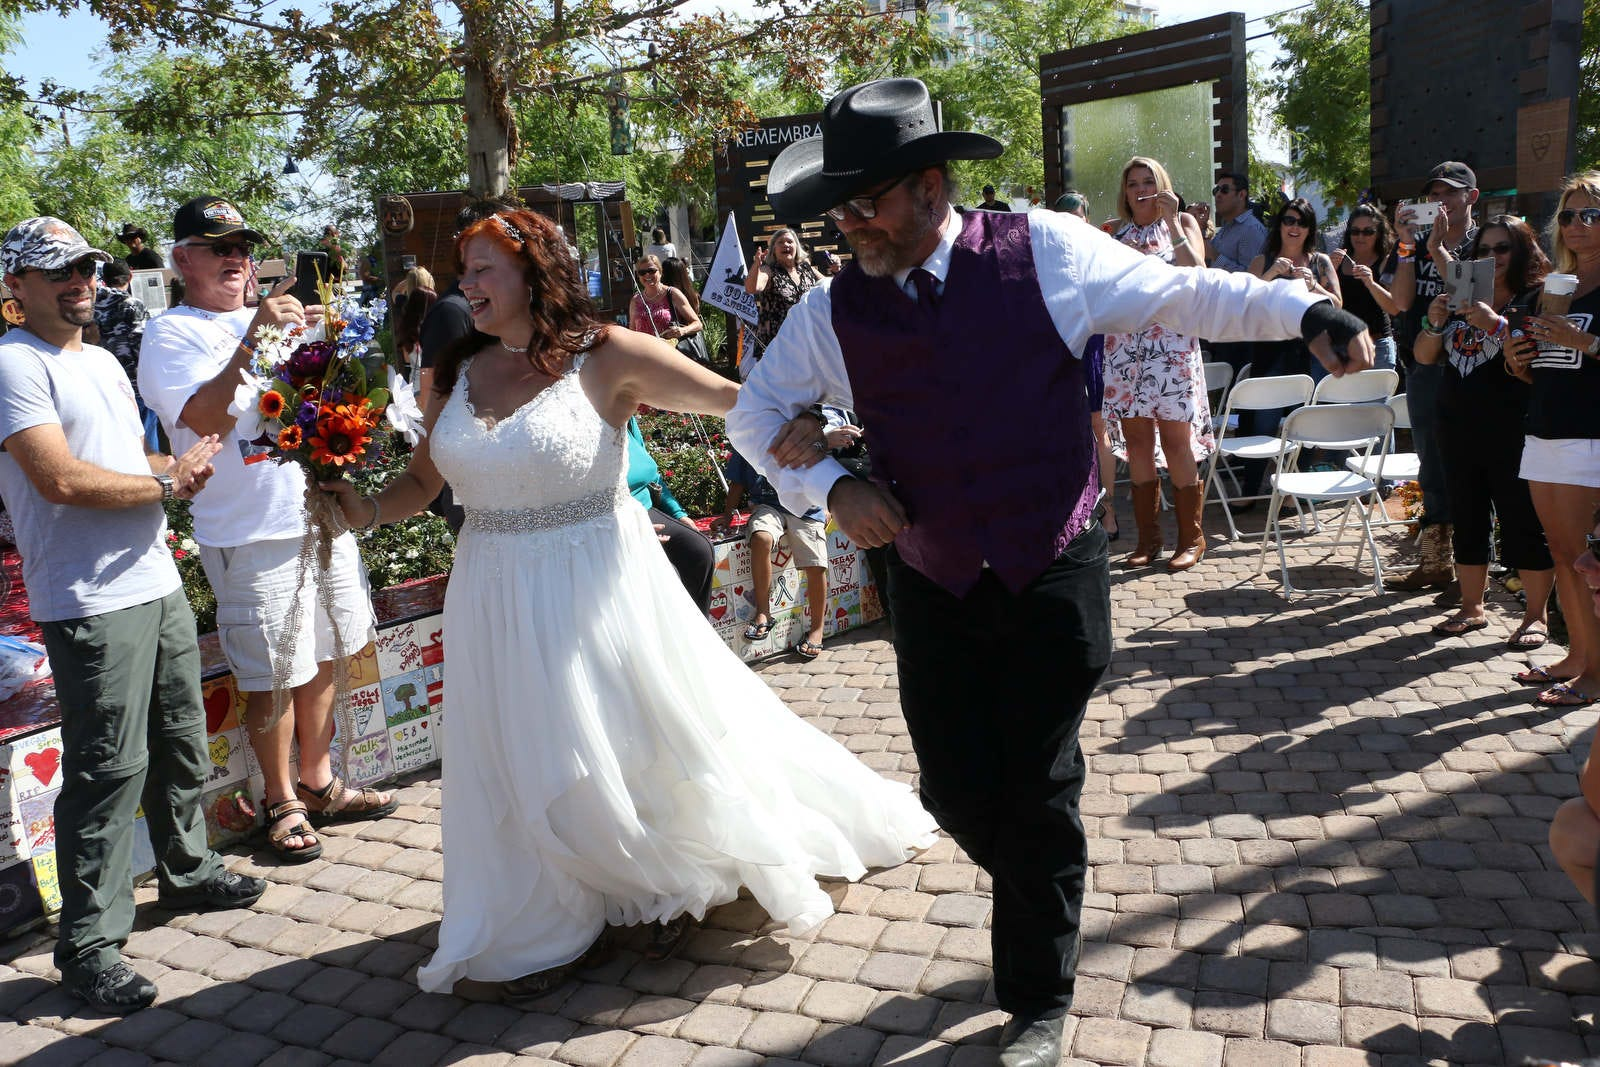 California couple marries on one-year anniversary of Las Vegas shooting